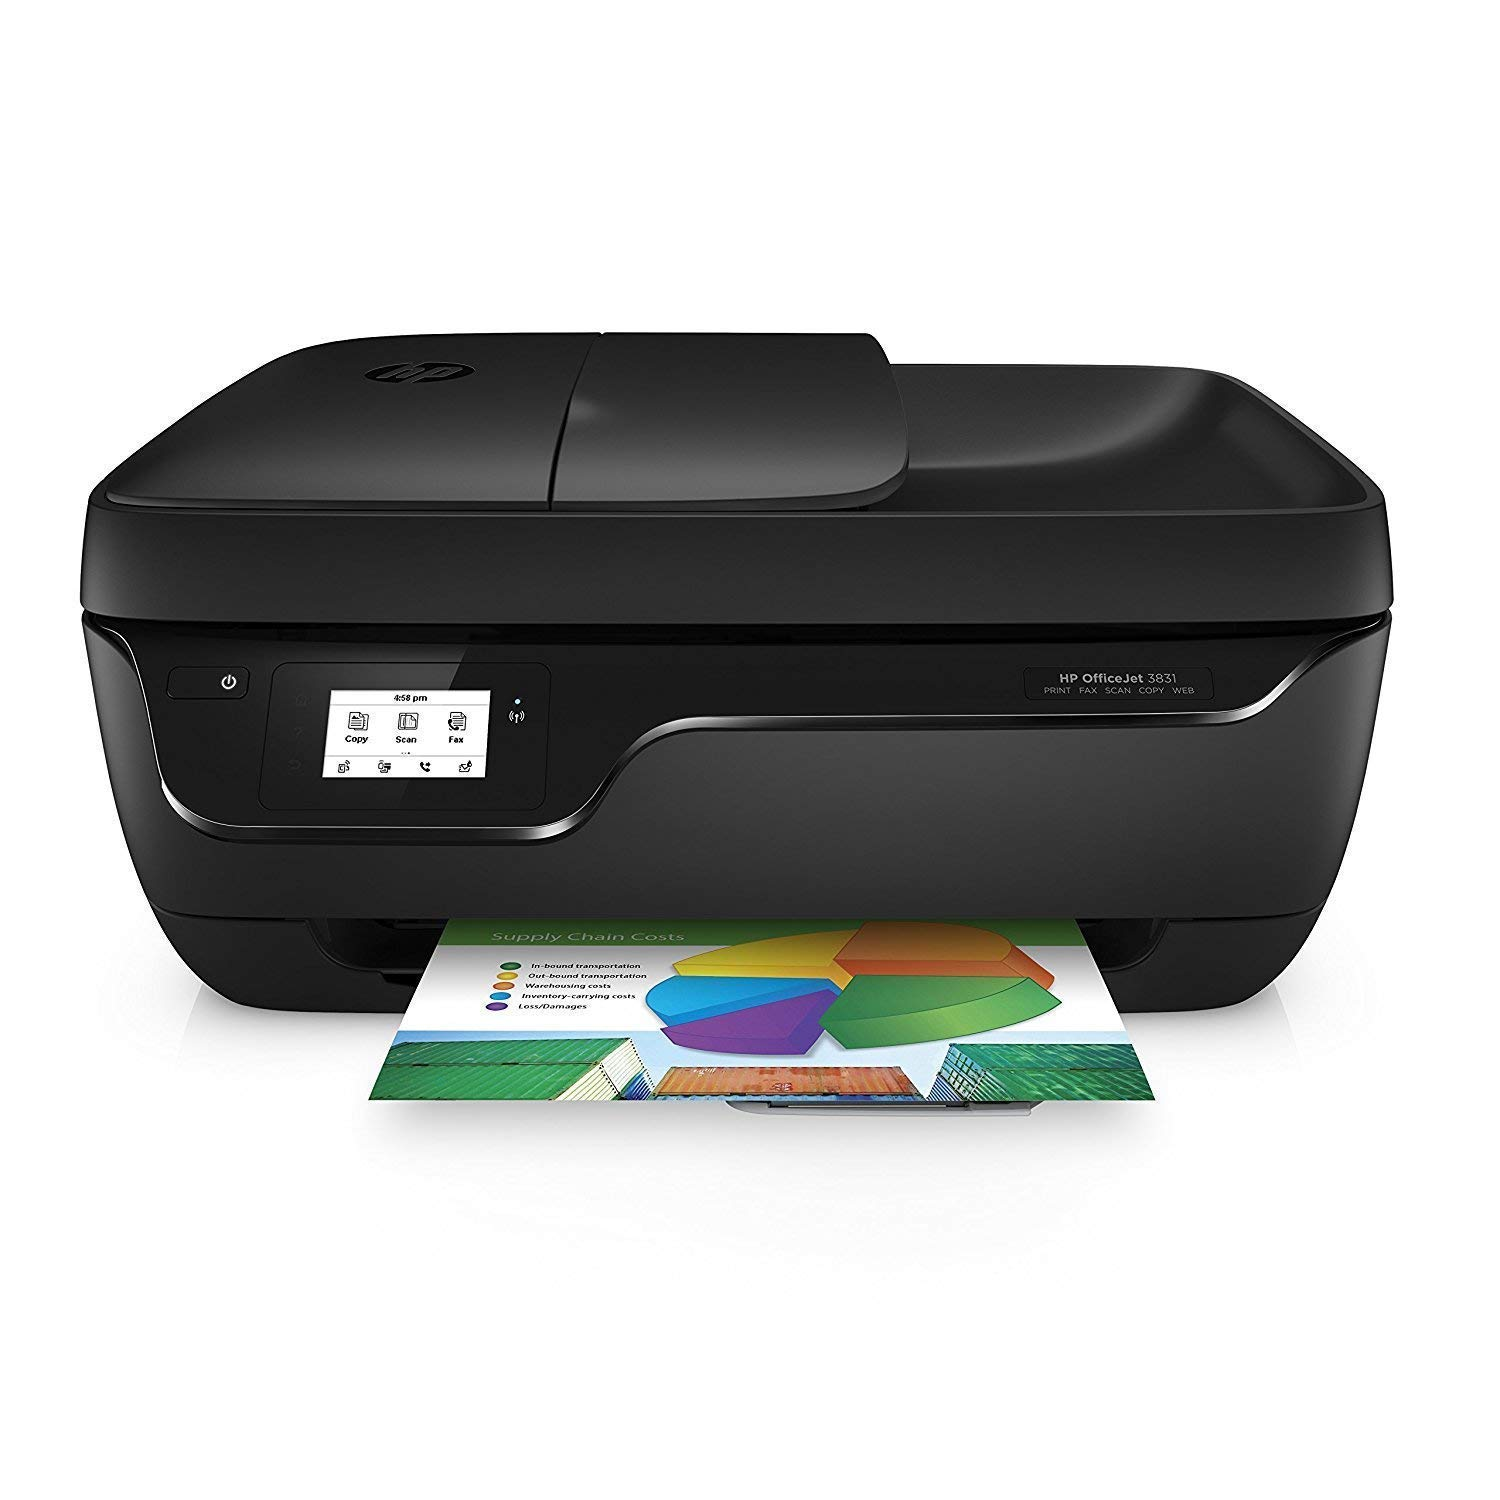 HP OfficeJet 3831, Impresora multifunción de tinta (WiFi, 512 MB ...